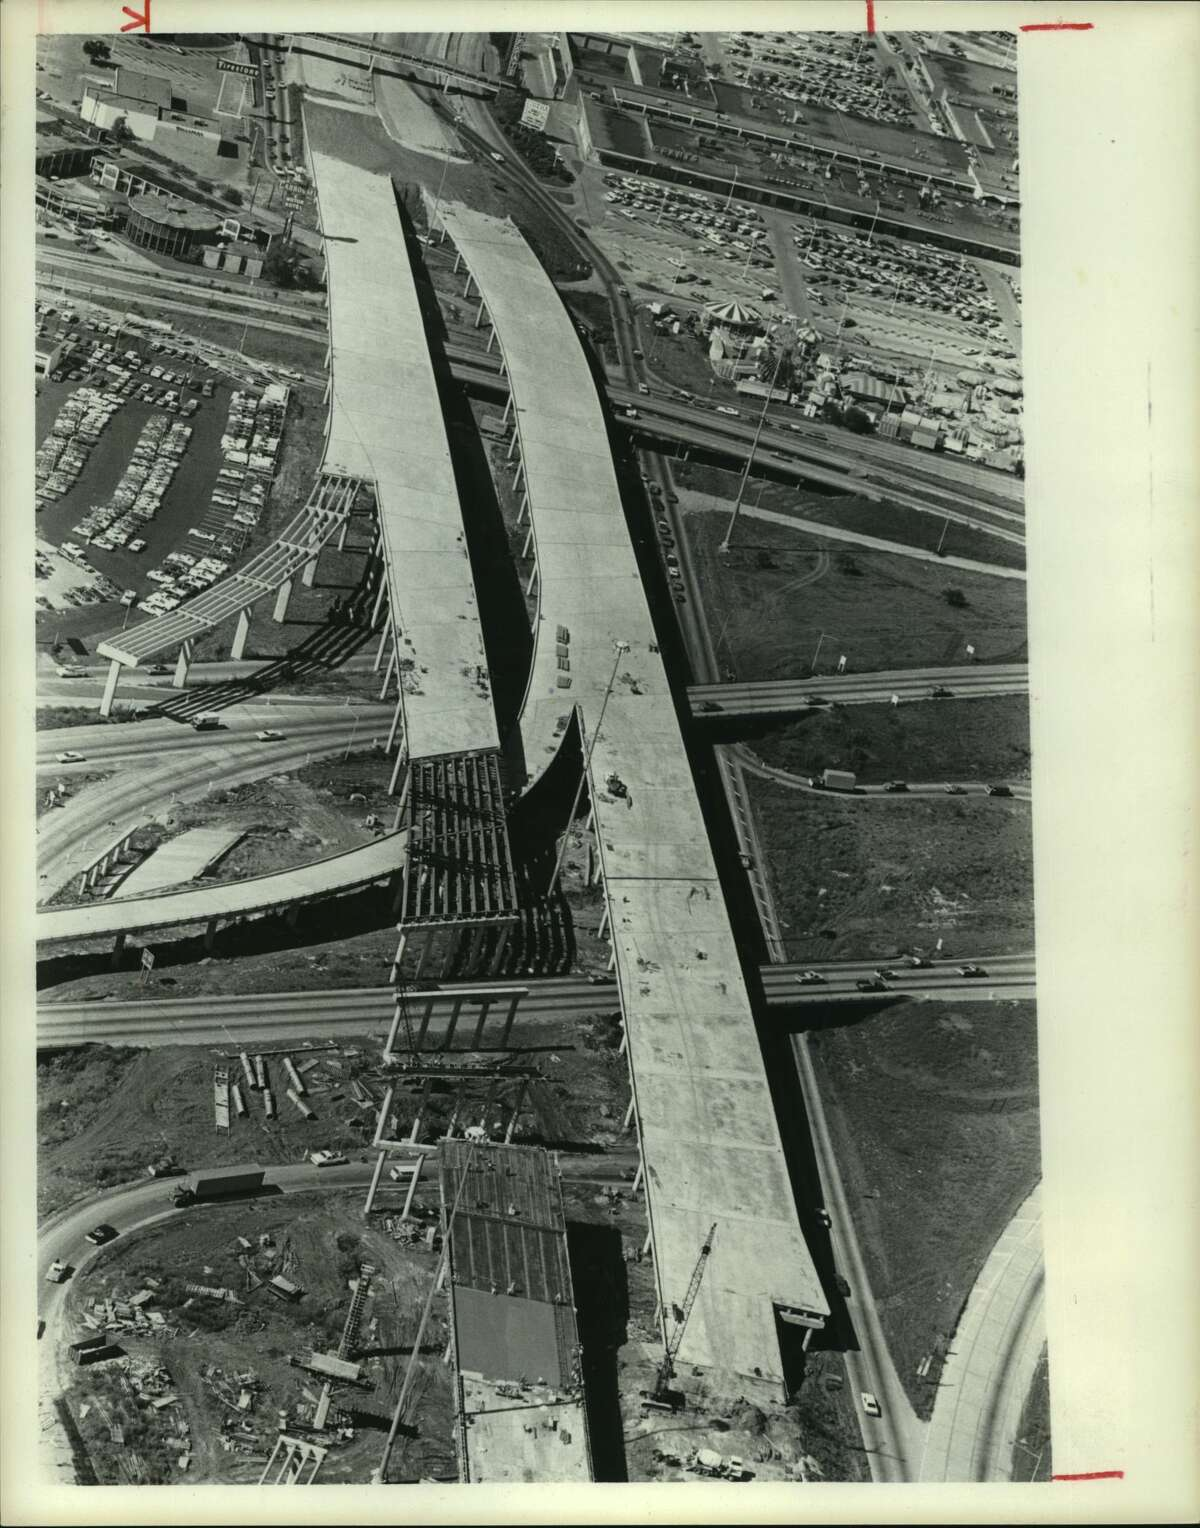 November 1974: South Loop westbound at Gulf Freeway in Gulfgate